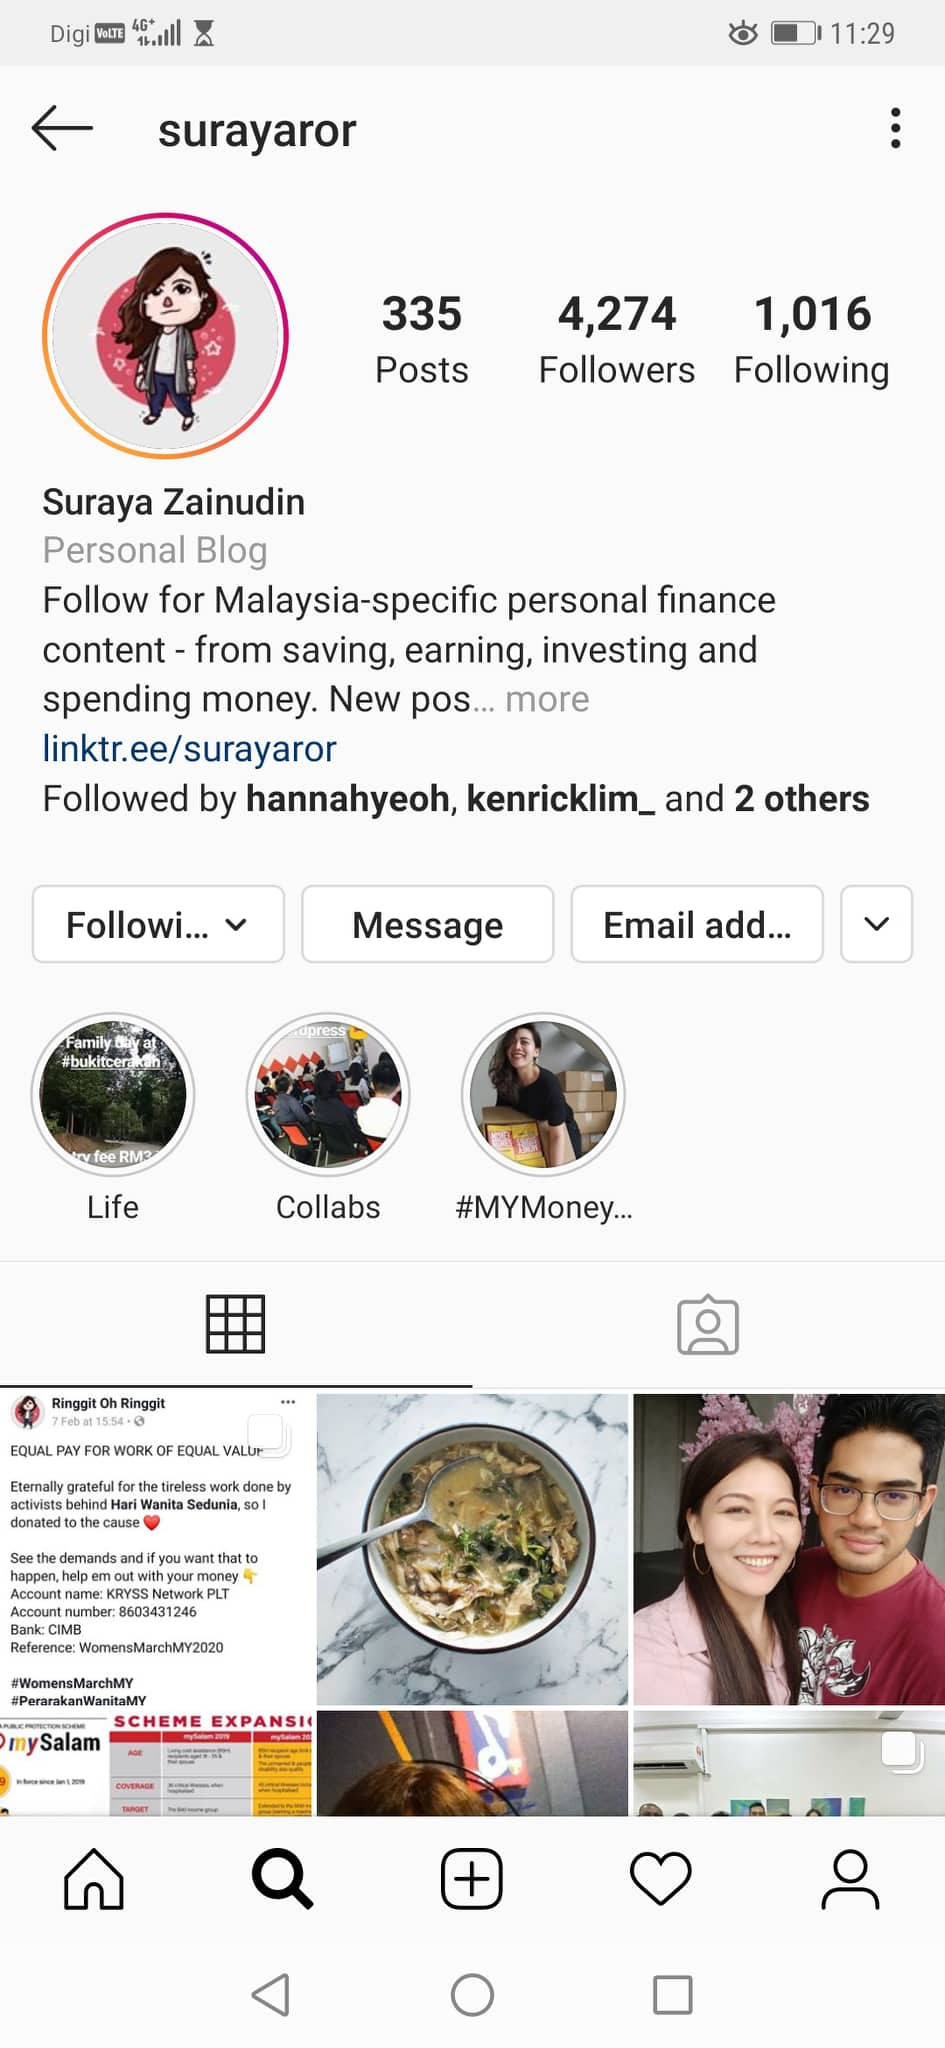 Follow Suraya on her Instagram, learn about books and finance